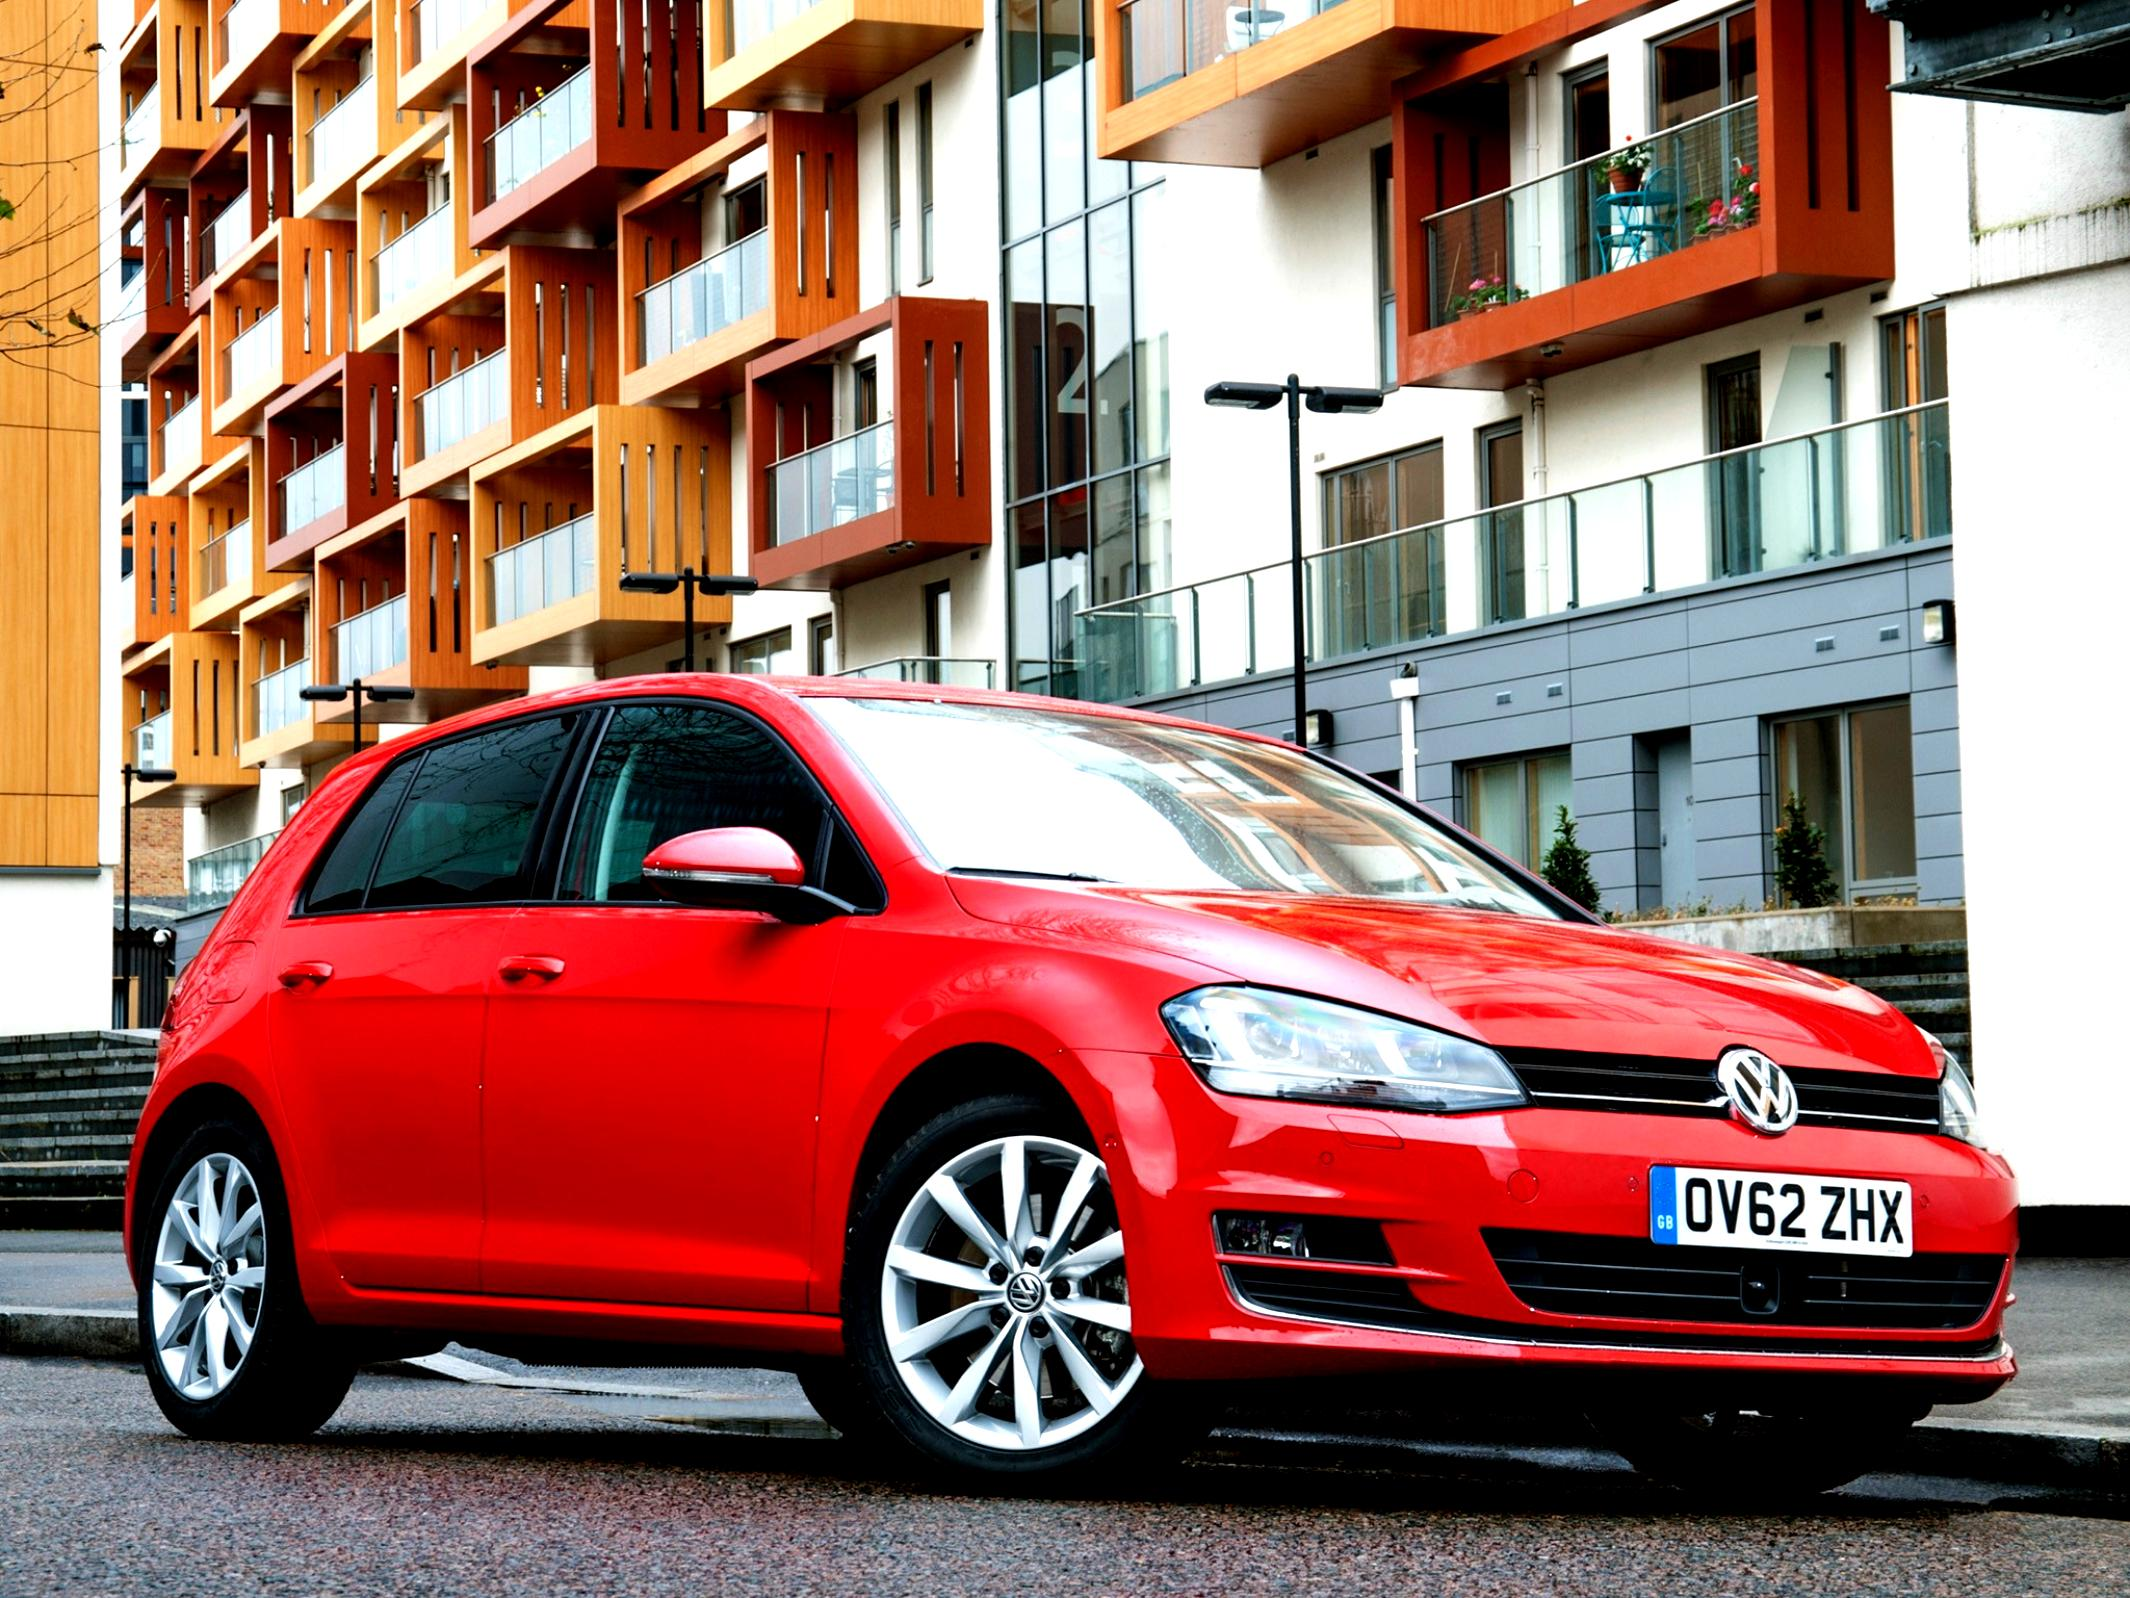 Volkswagen Golf VII 5 Doors 2012 #66